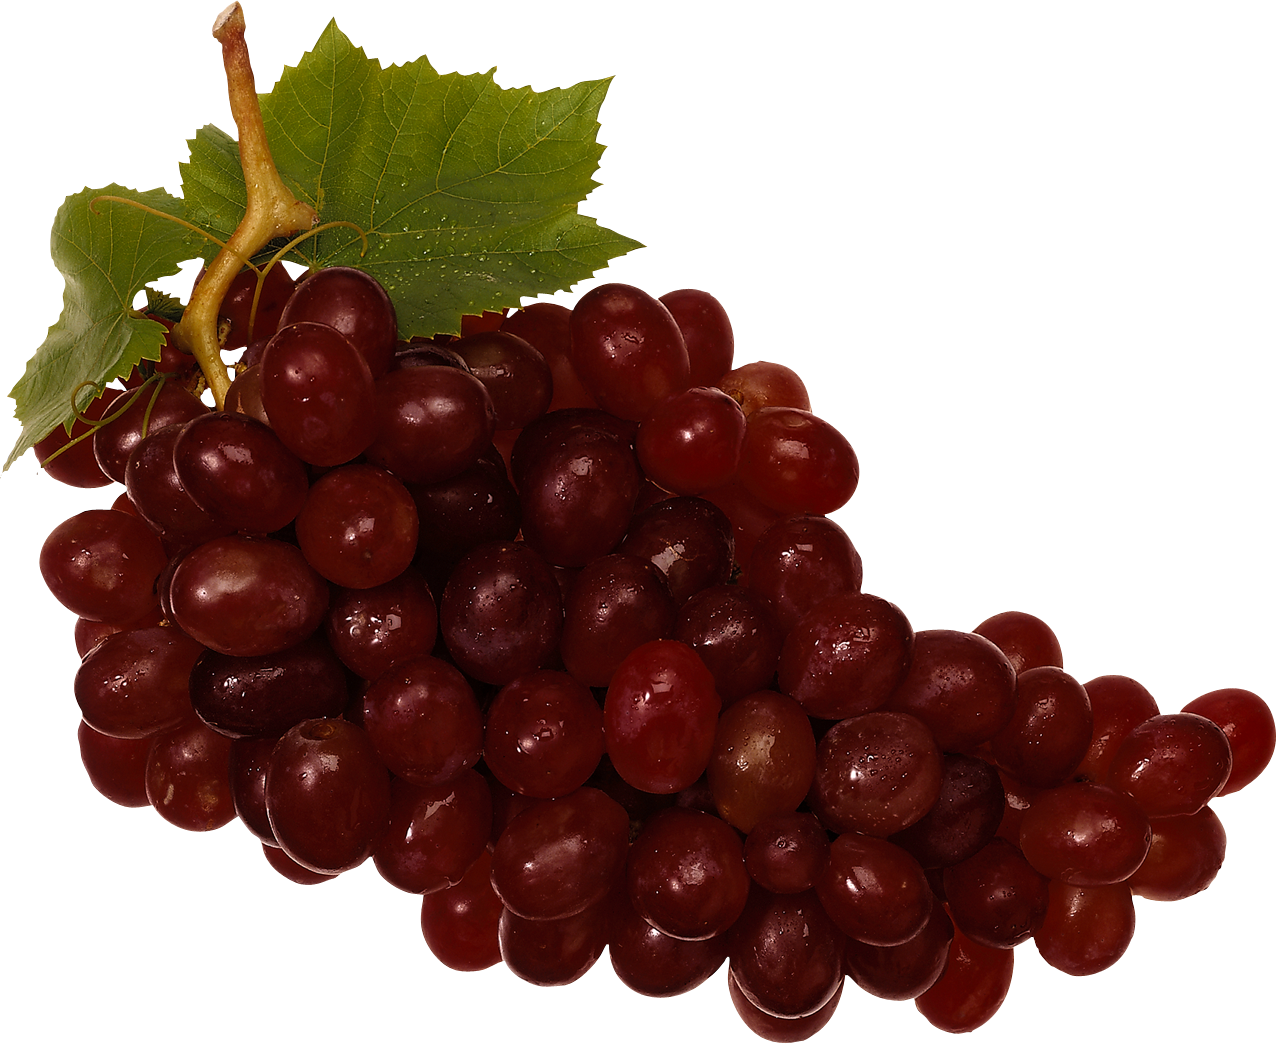 Red grapes png. Grape nineteen isolated stock